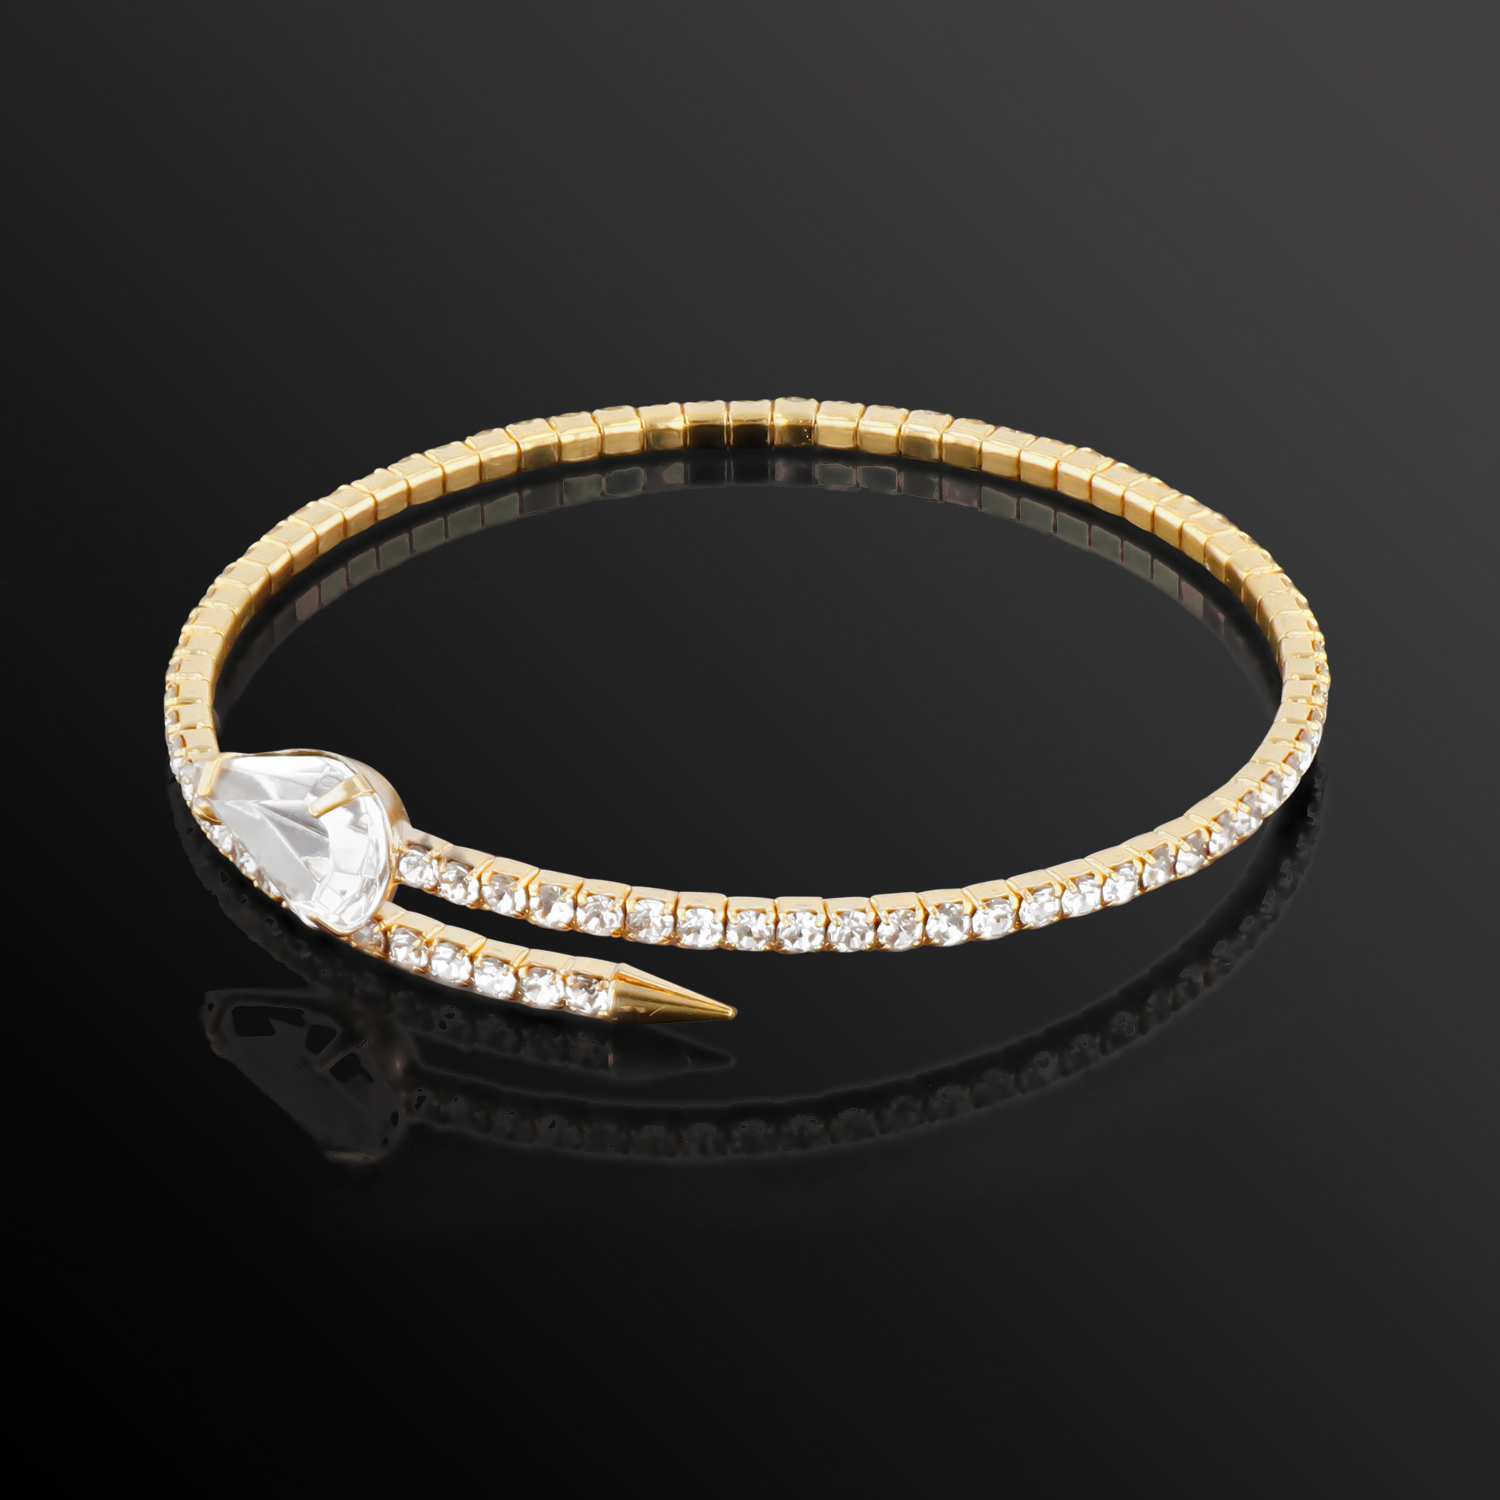 Womens-Ladies-Fashion-Accessories-Jewelry-Single-Crystal-Spear-Bangle-Bracelet thumbnail 10